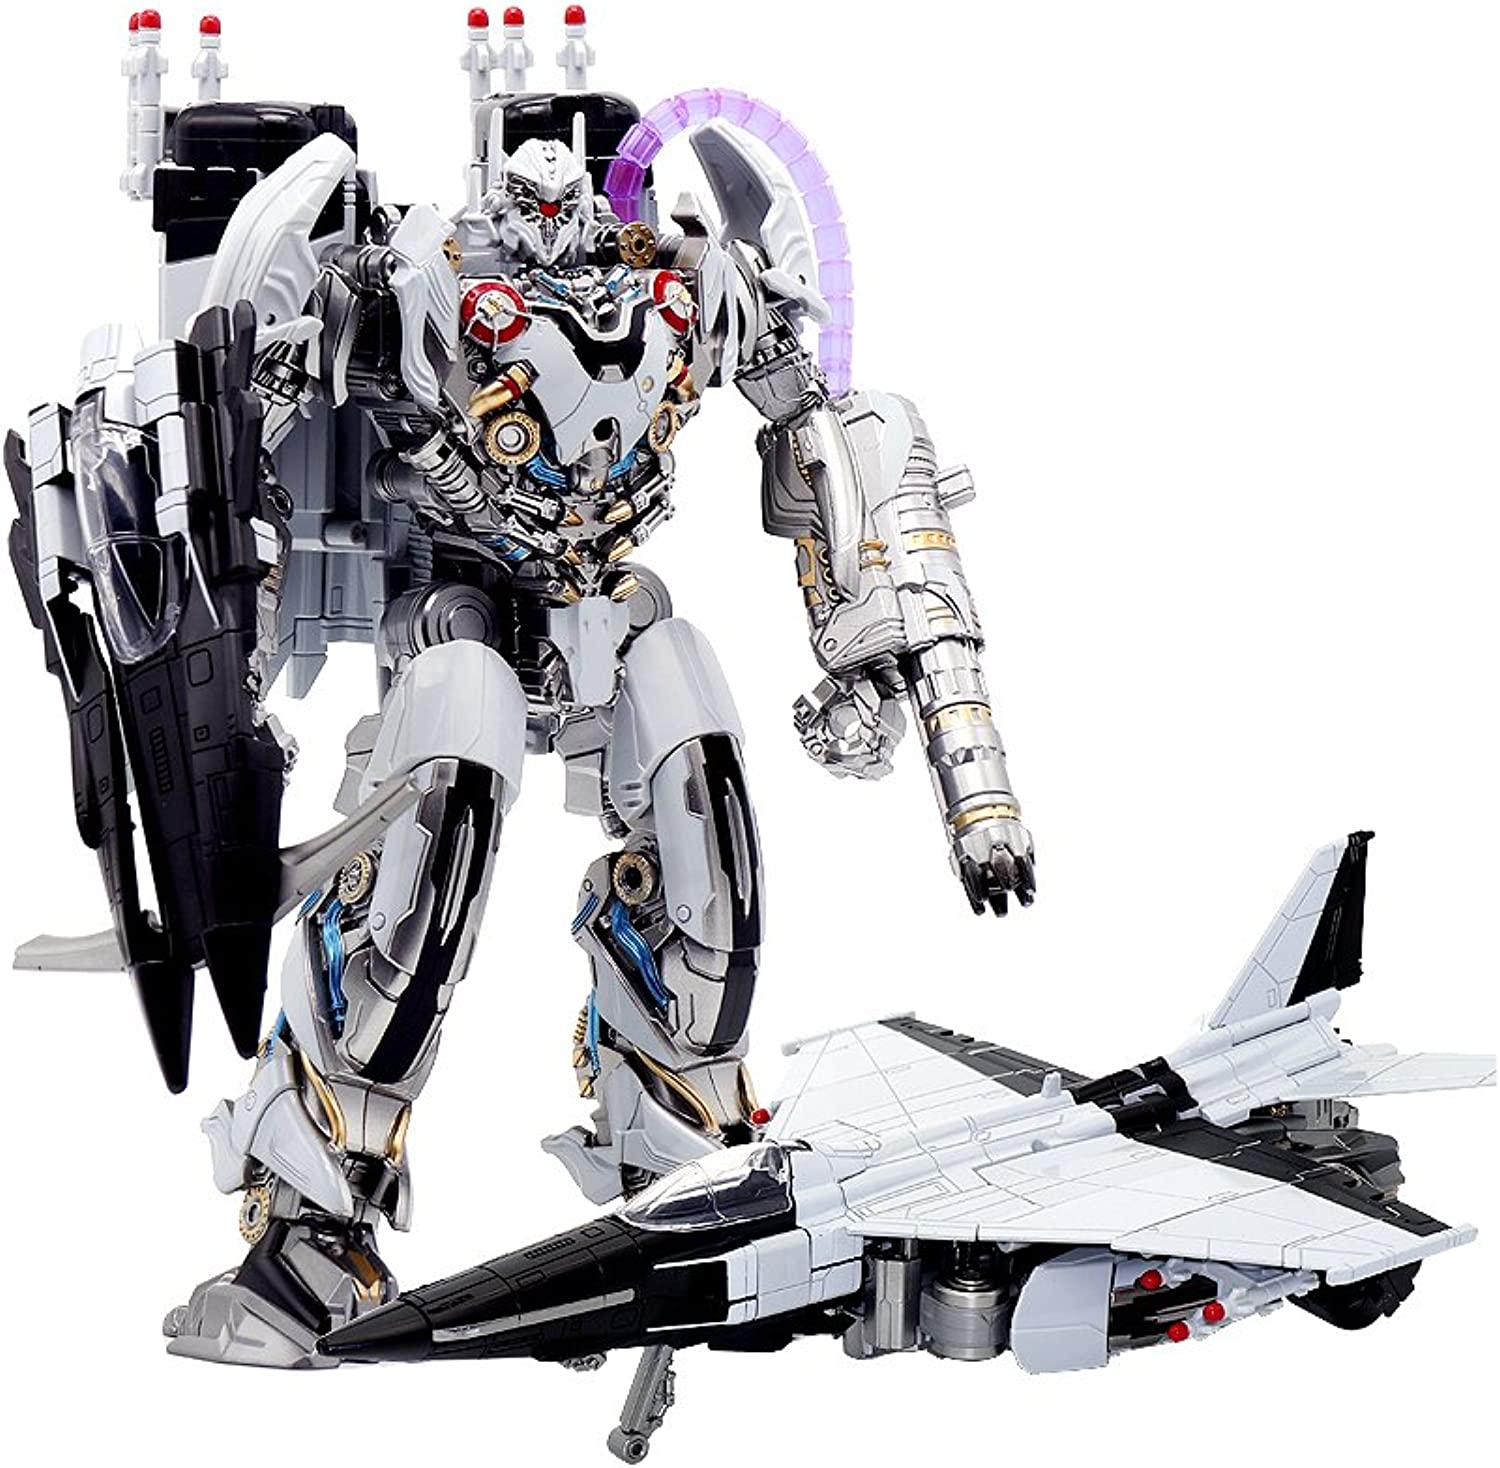 Transformer LS01 Nitro Zeus Plane Mode TF Movie KO Oversize Alloy Action Figure Robot Collection Toys Gift (with Original Box)